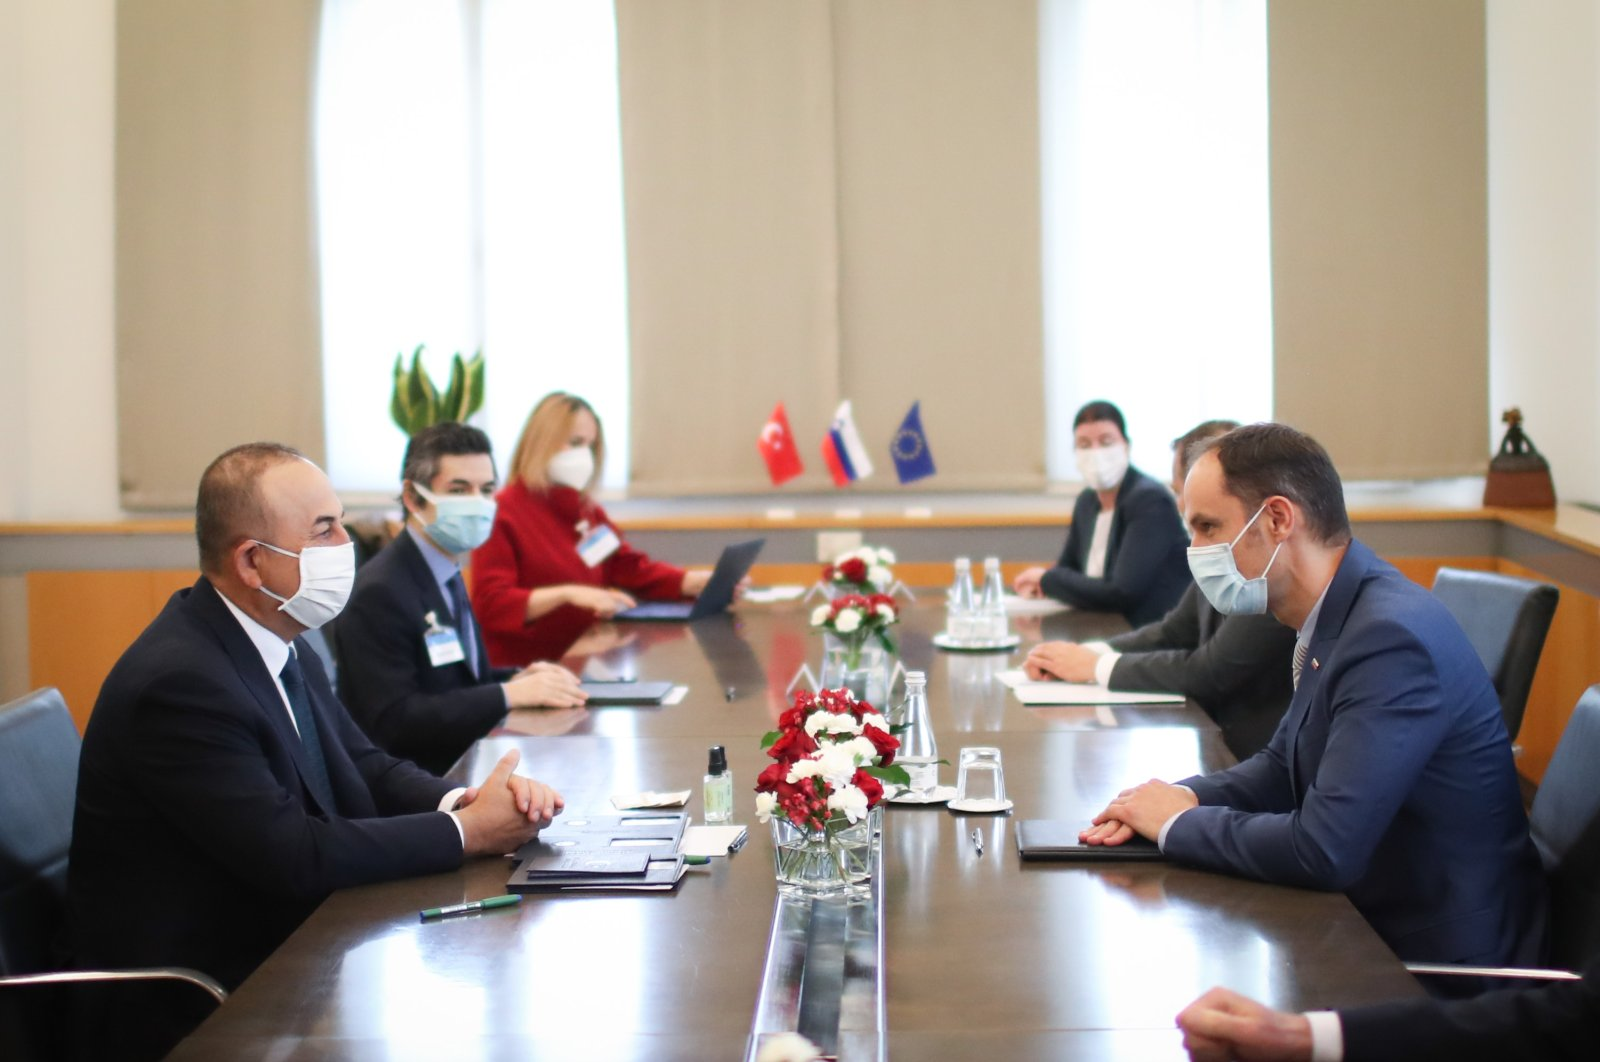 Foreign Minister Mevlüt Çavuşoğlu (L) and his delegation attend a meeting with Slovenian Foreign Minister Anze Logar (R) in Ljubljana, Slovenia, May 4, 2021. (AA Photo)